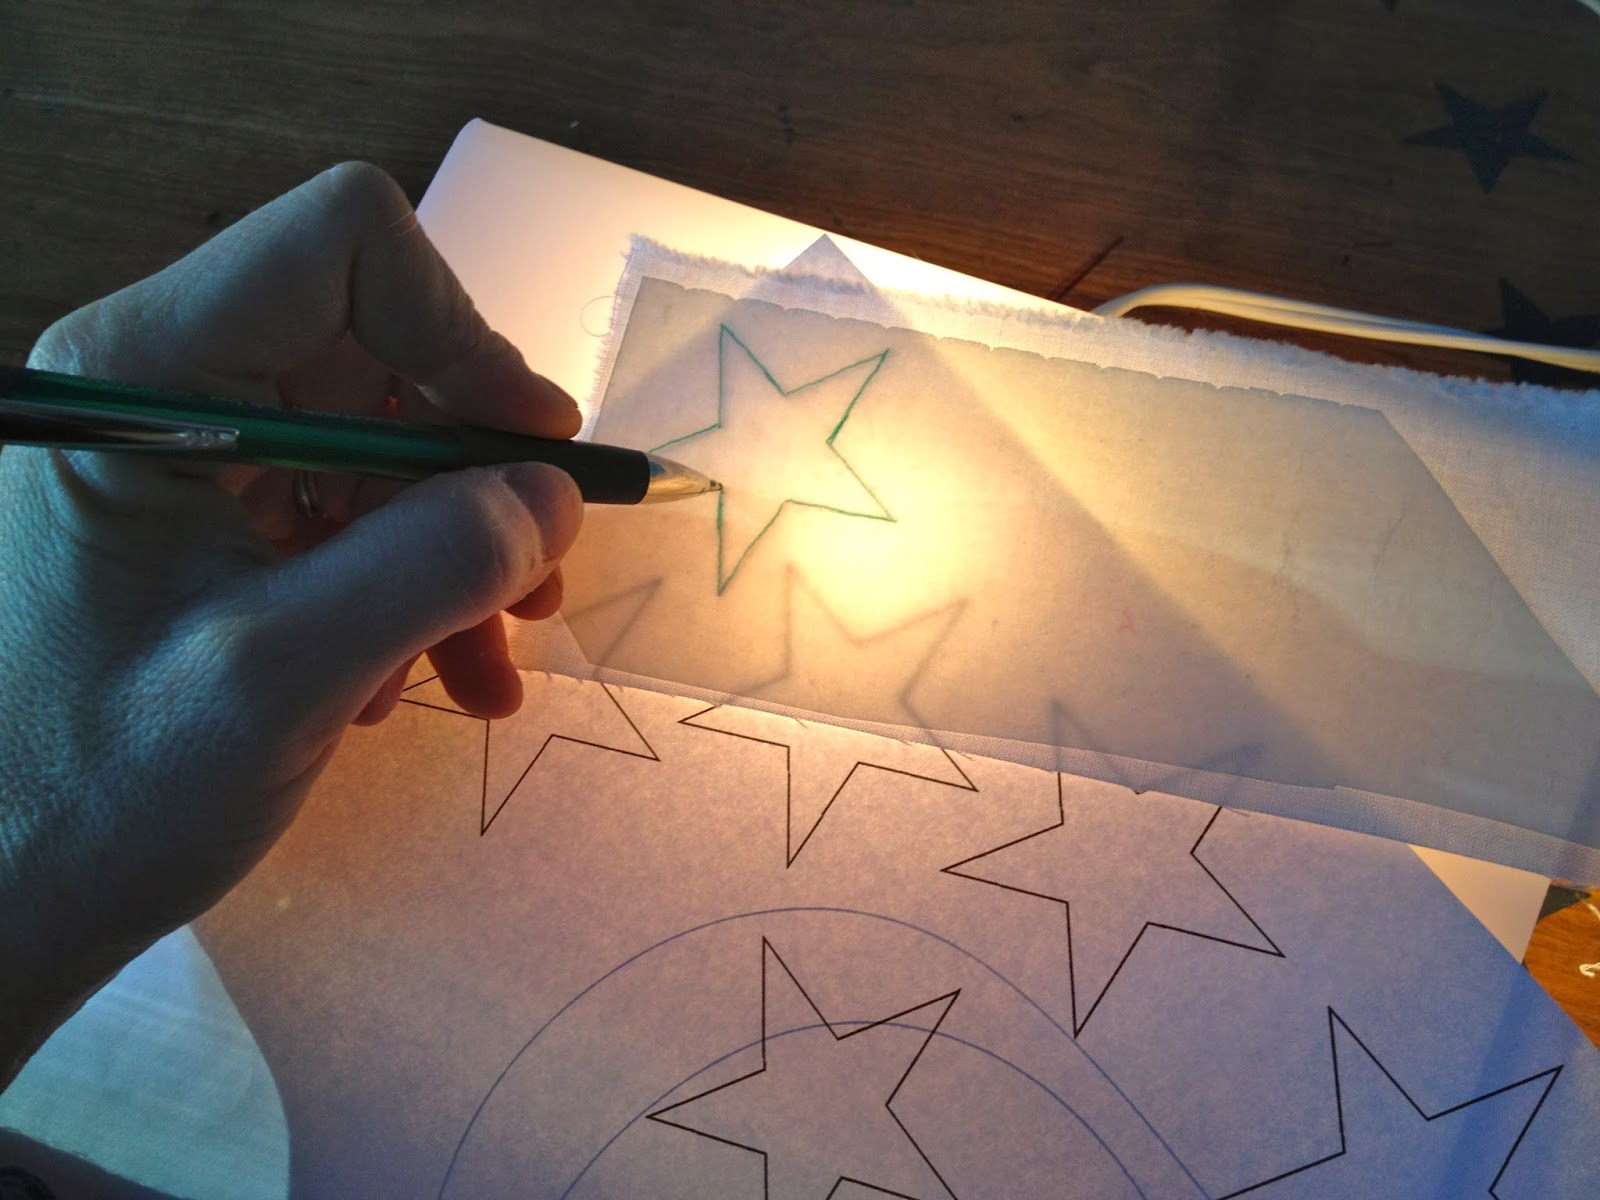 trace stars onto white fabric